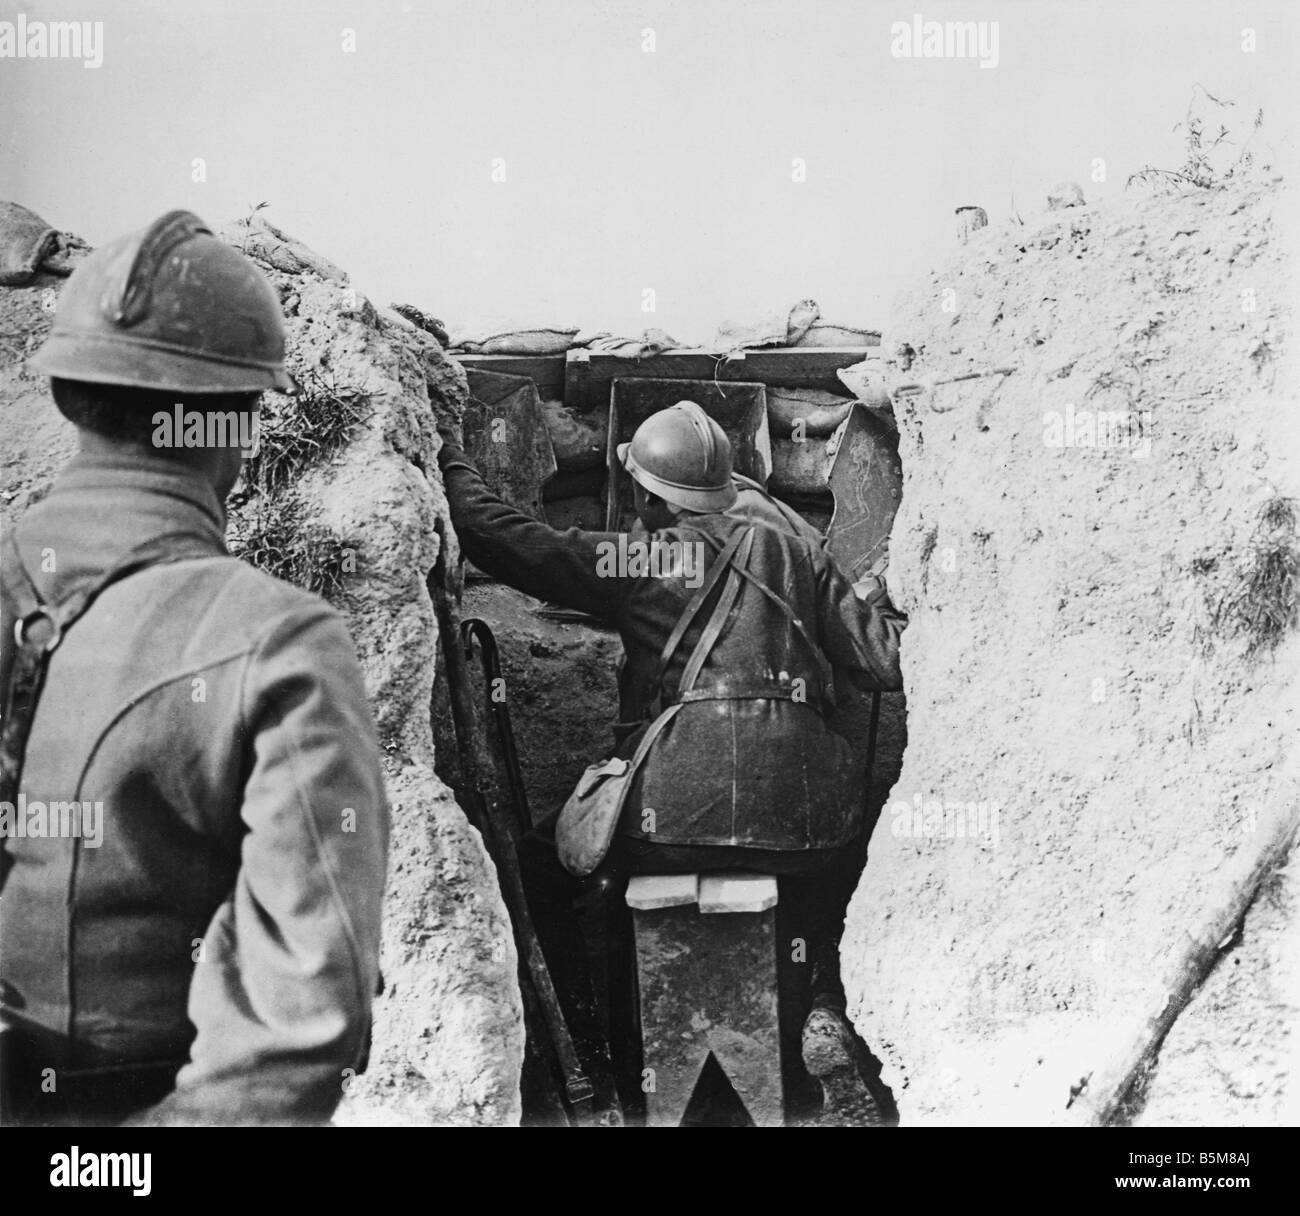 2 G55 F1 1915 15 E French soldiers in trench WWI History World War I France Trench warfware French infantry at an - Stock Image